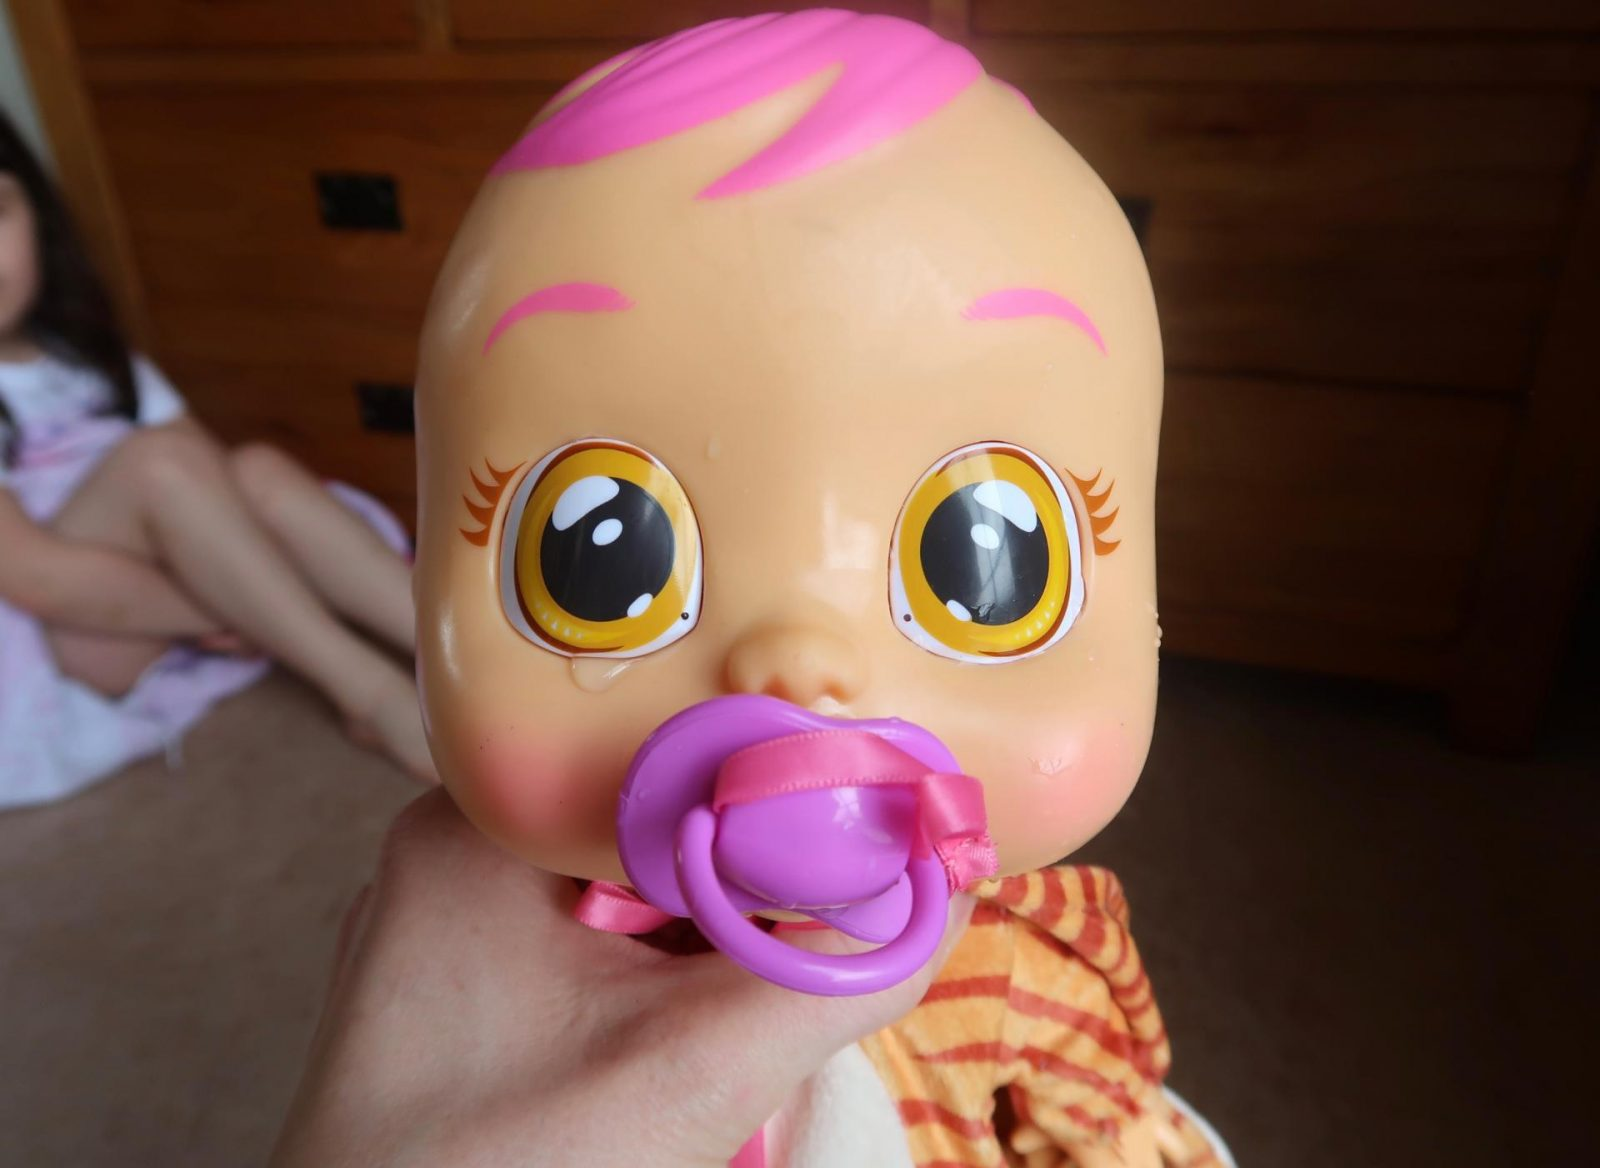 cry baby doll cries real tears